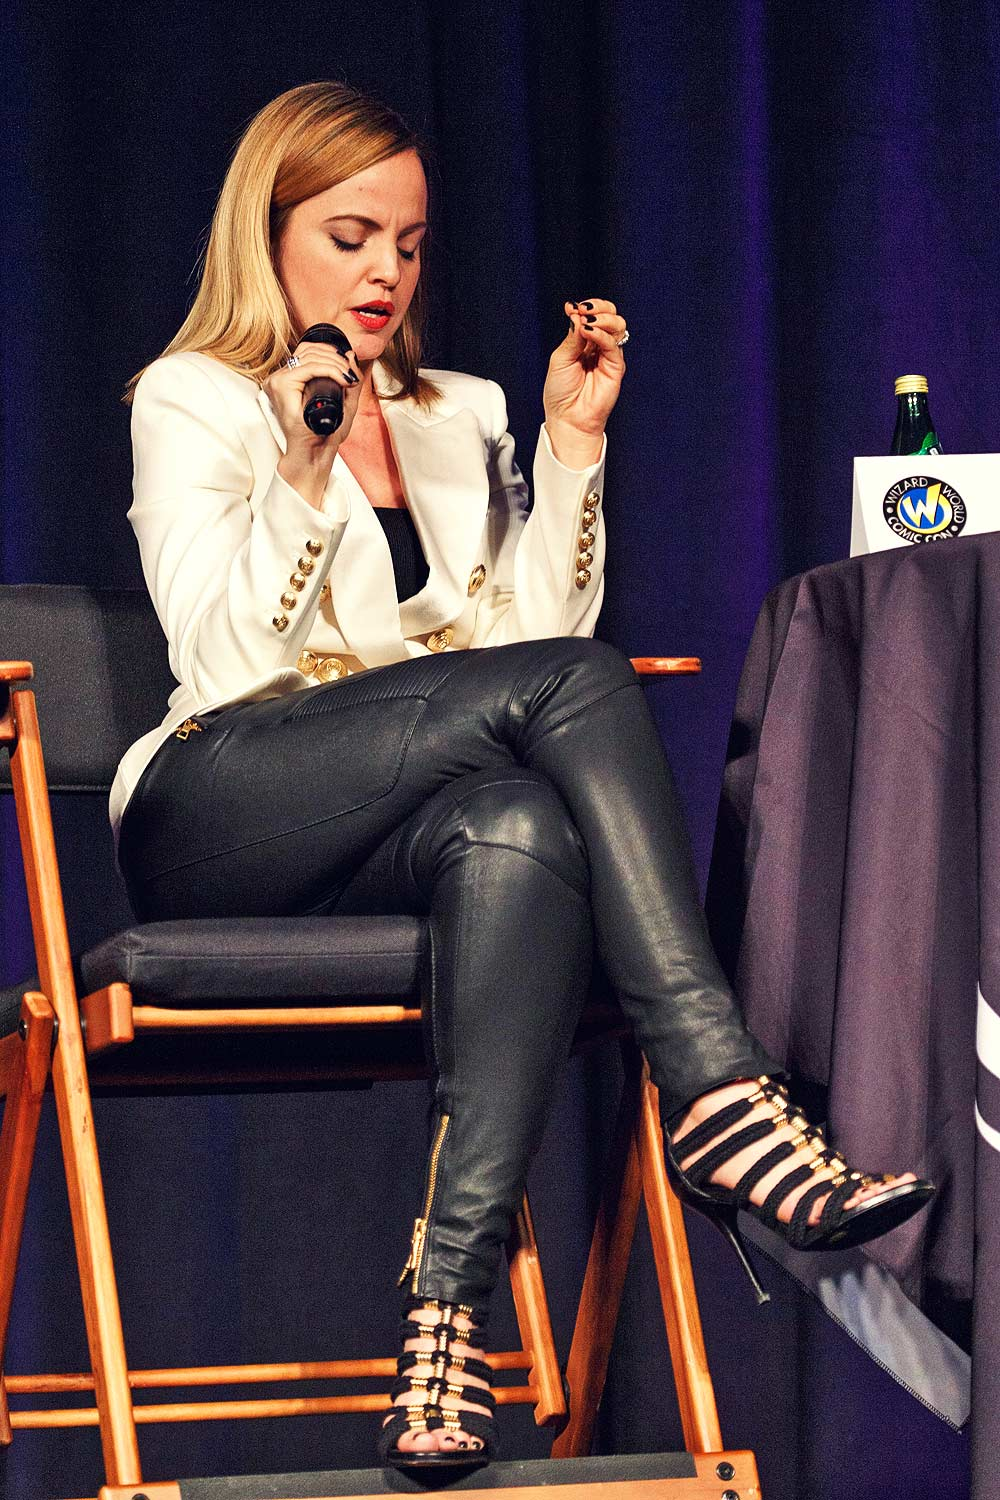 Mena Suvari at 2015 Wizard World Comic Con